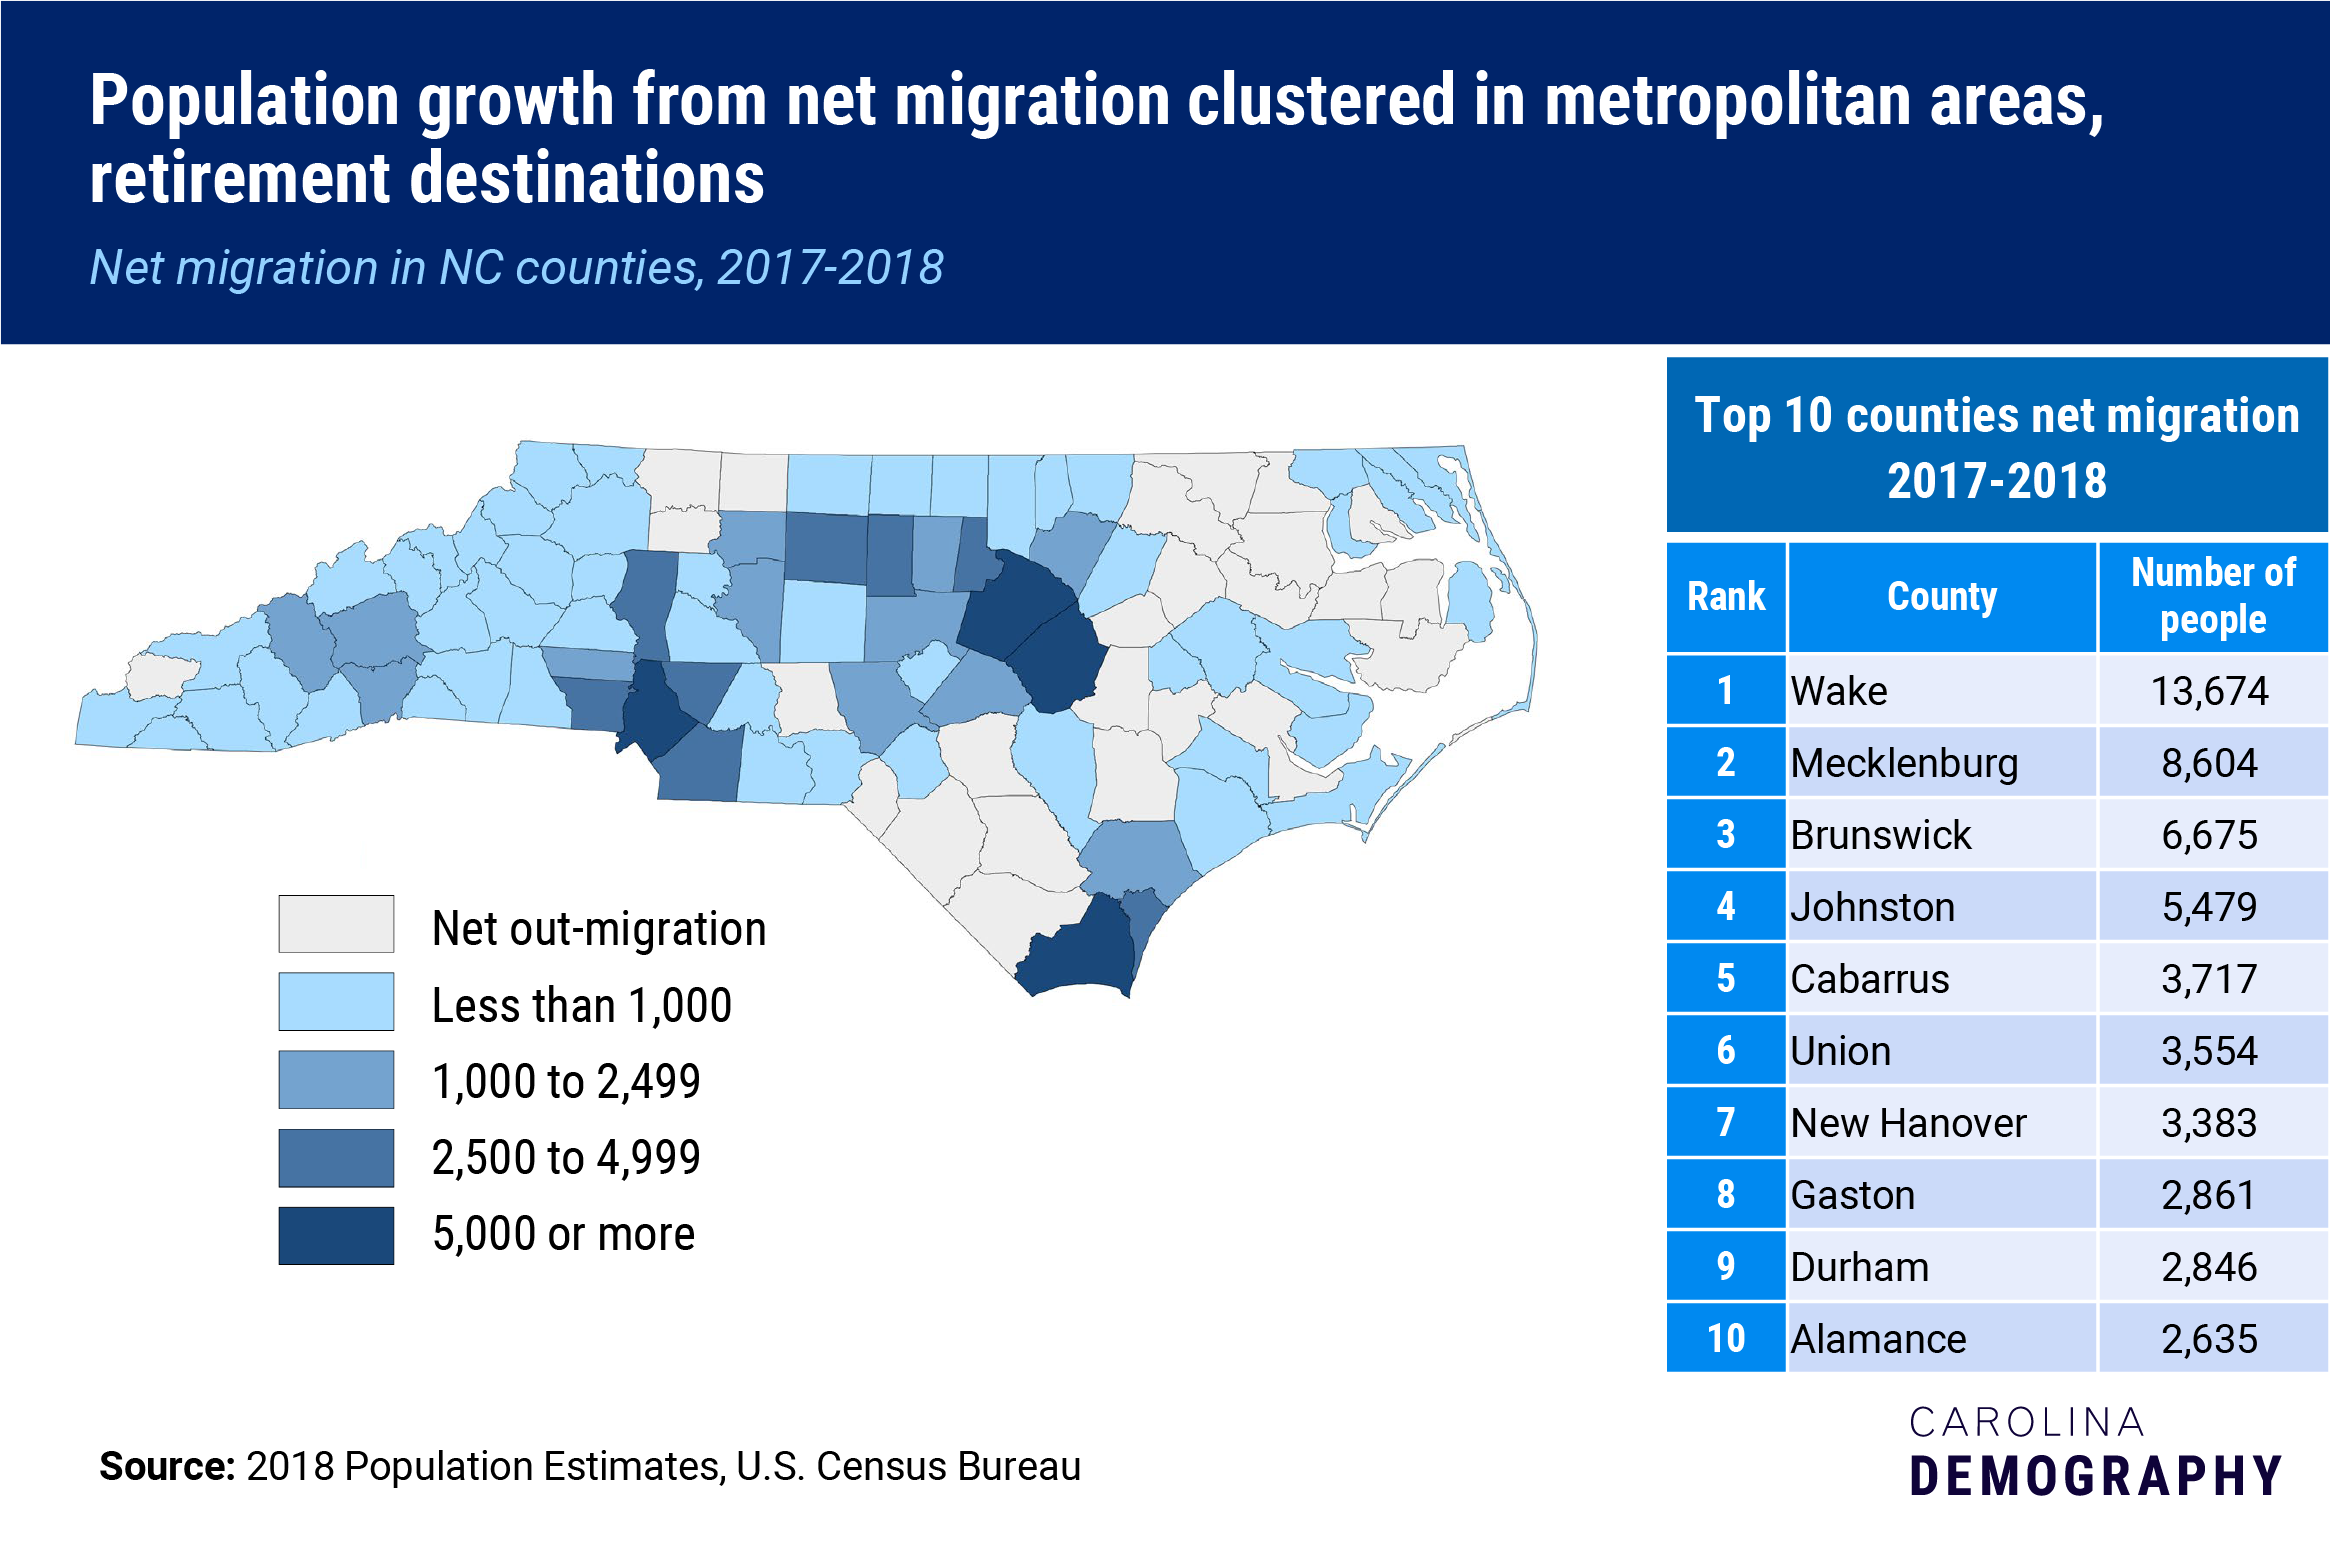 Population growth from net migration clustered in metropolitan areas, retirement destinations